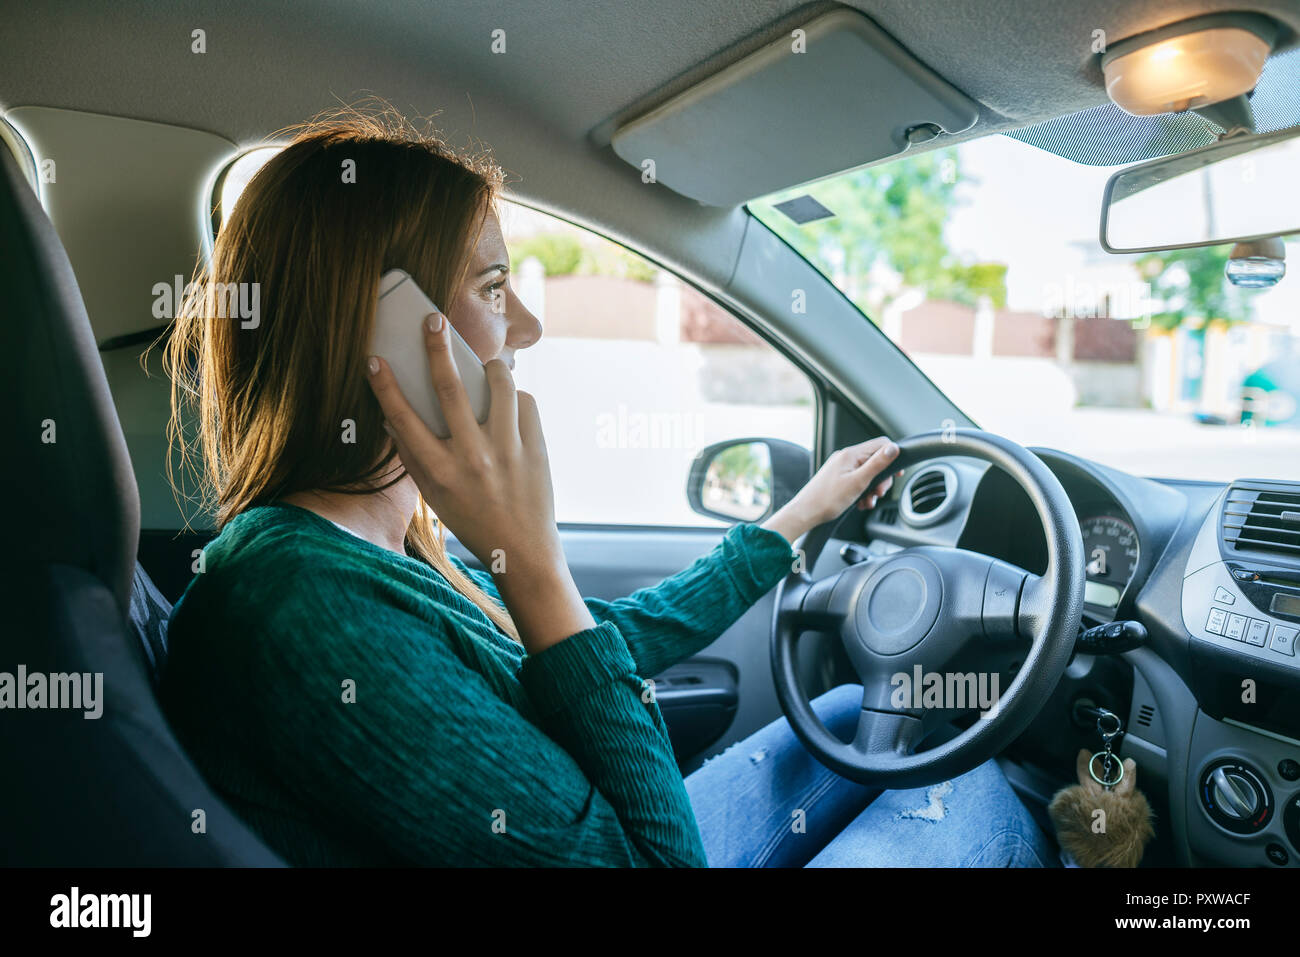 Woman talking on the mobile phone inside of a car - Stock Image